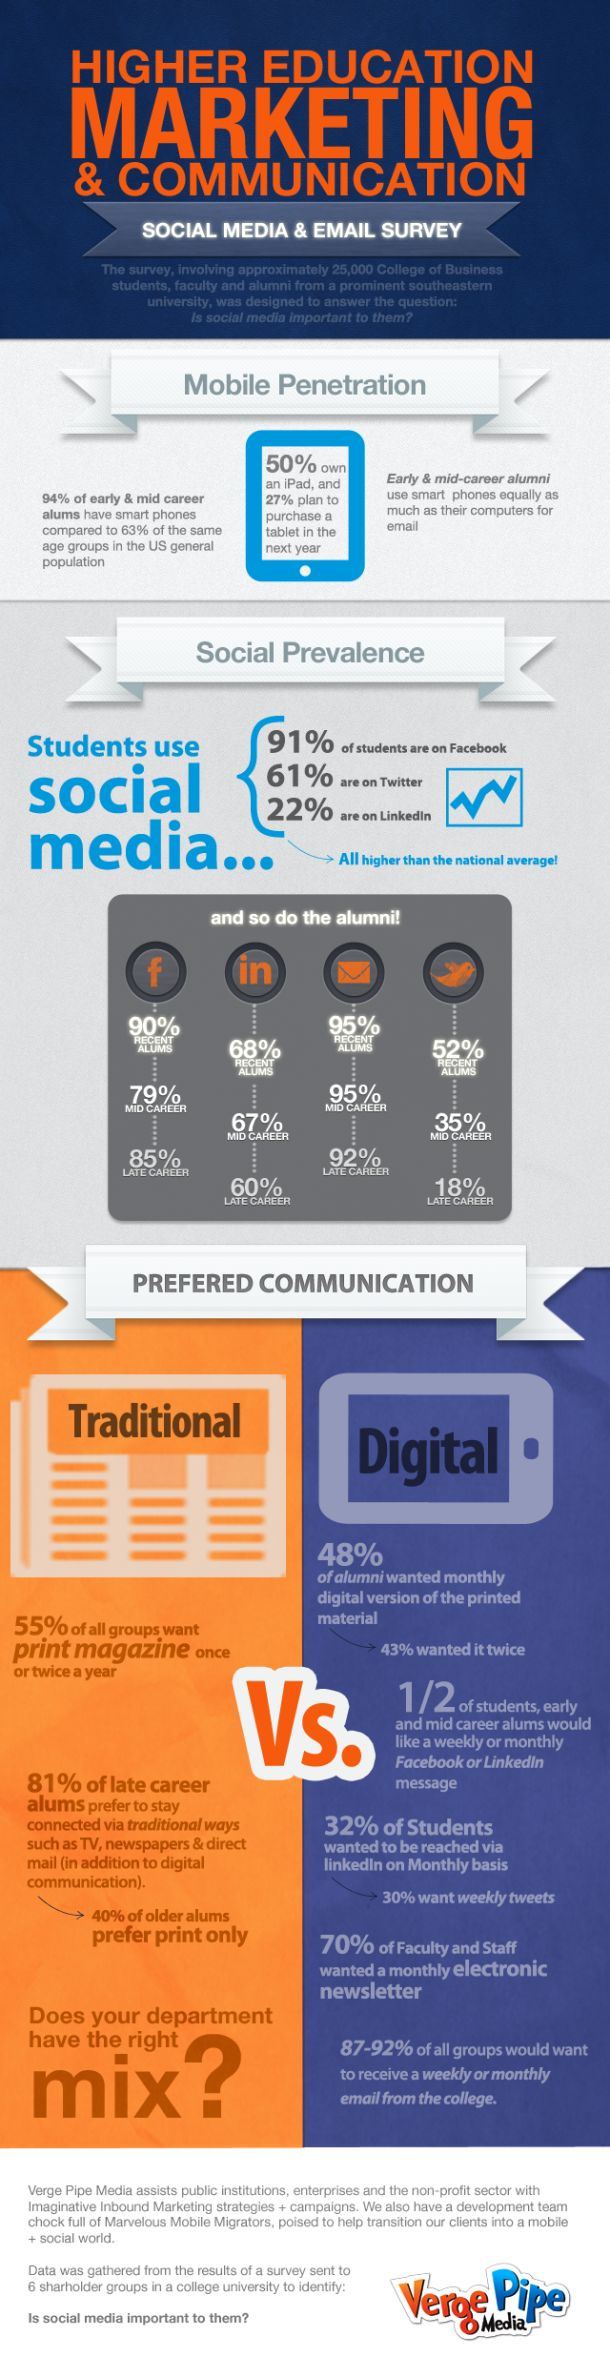 Higher Education Marketing & Communication [INFOGRAPHIC]